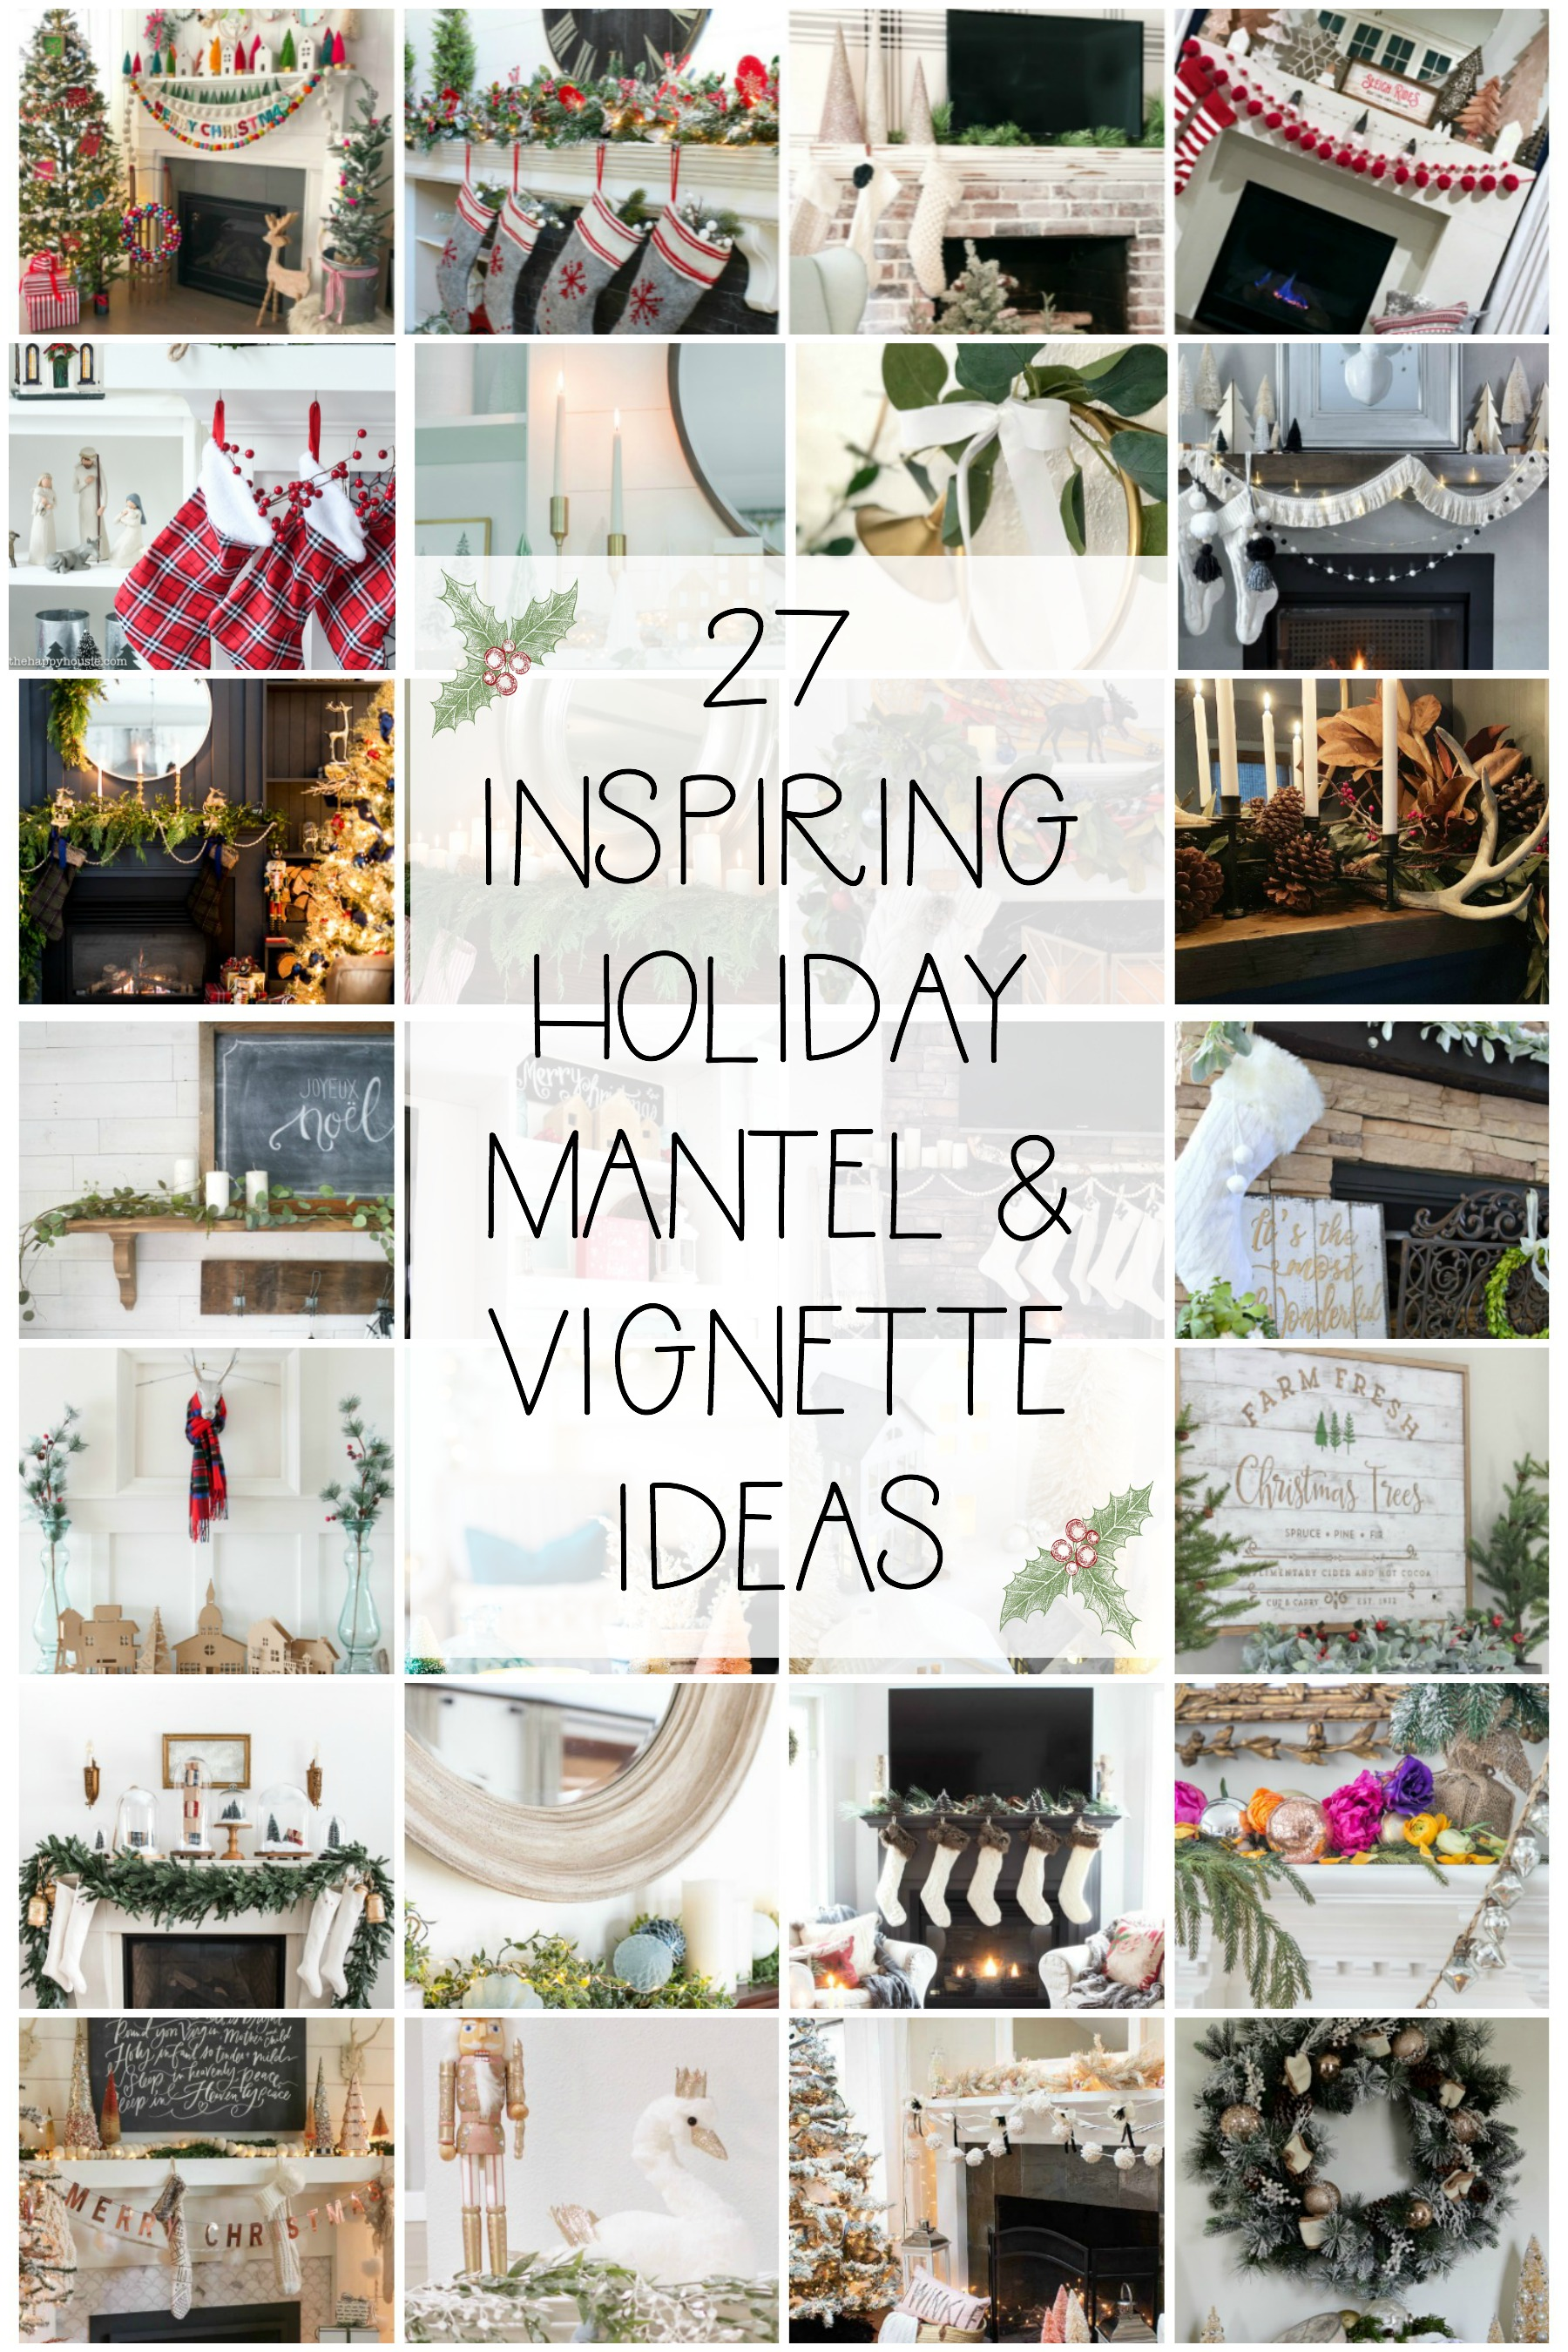 27 inspiring holiday mantel and vignette ideas Seasonal Simplicity Christmas Series